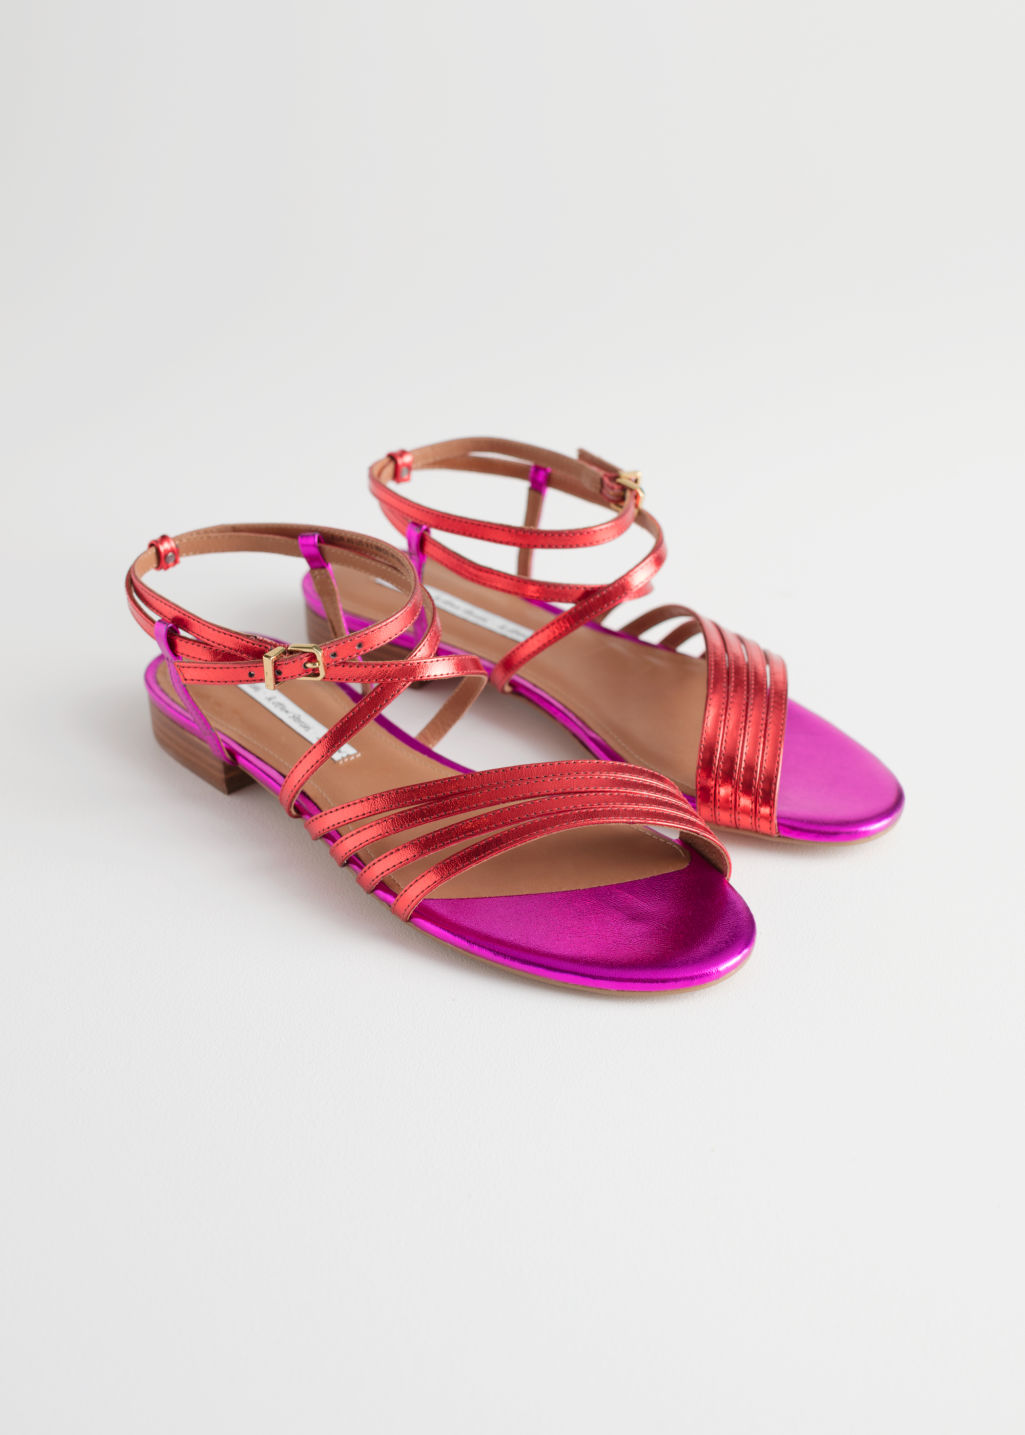 & OTHER STORIES Metallic Gladiator Strappy Sandals OJaudhldXs